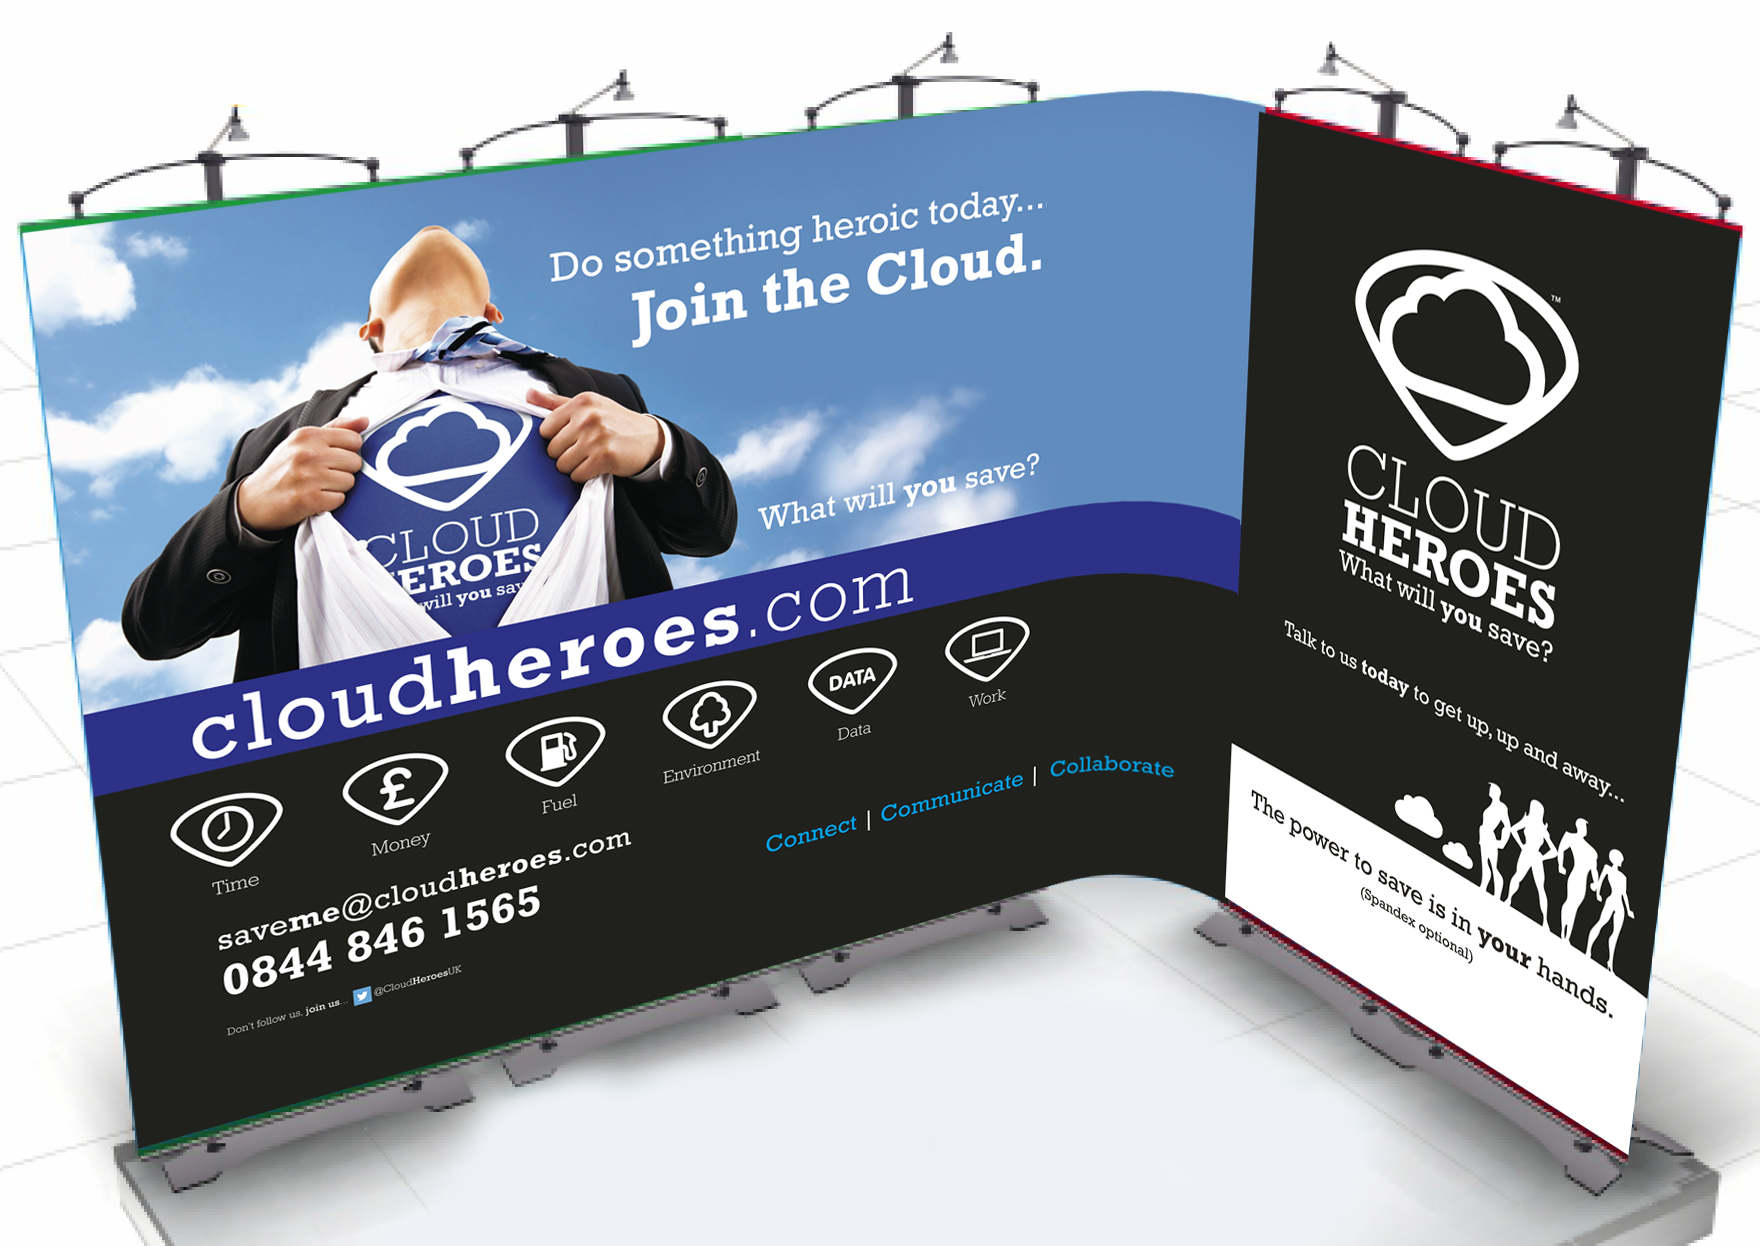 CloudHeroes_ExhibitionStand